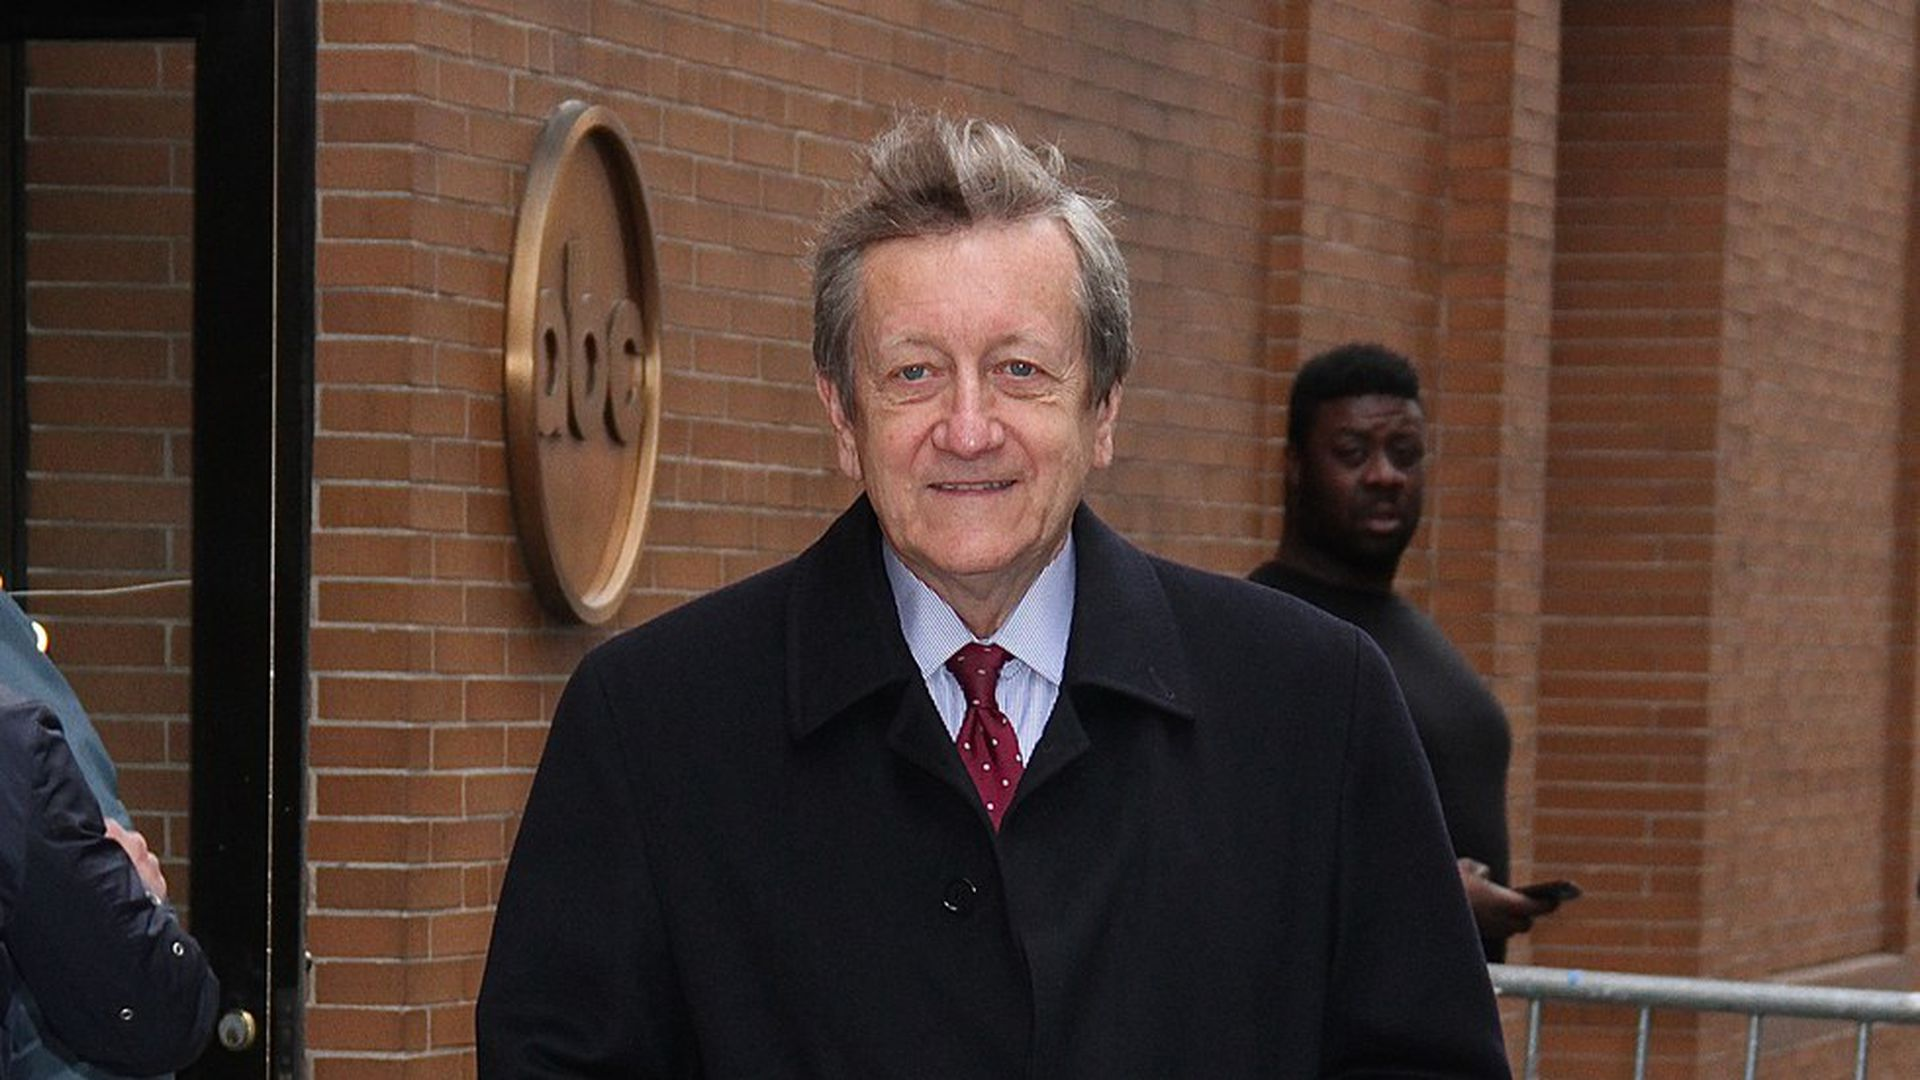 ABC's Brian Ross suspended over erroneous Flynn report